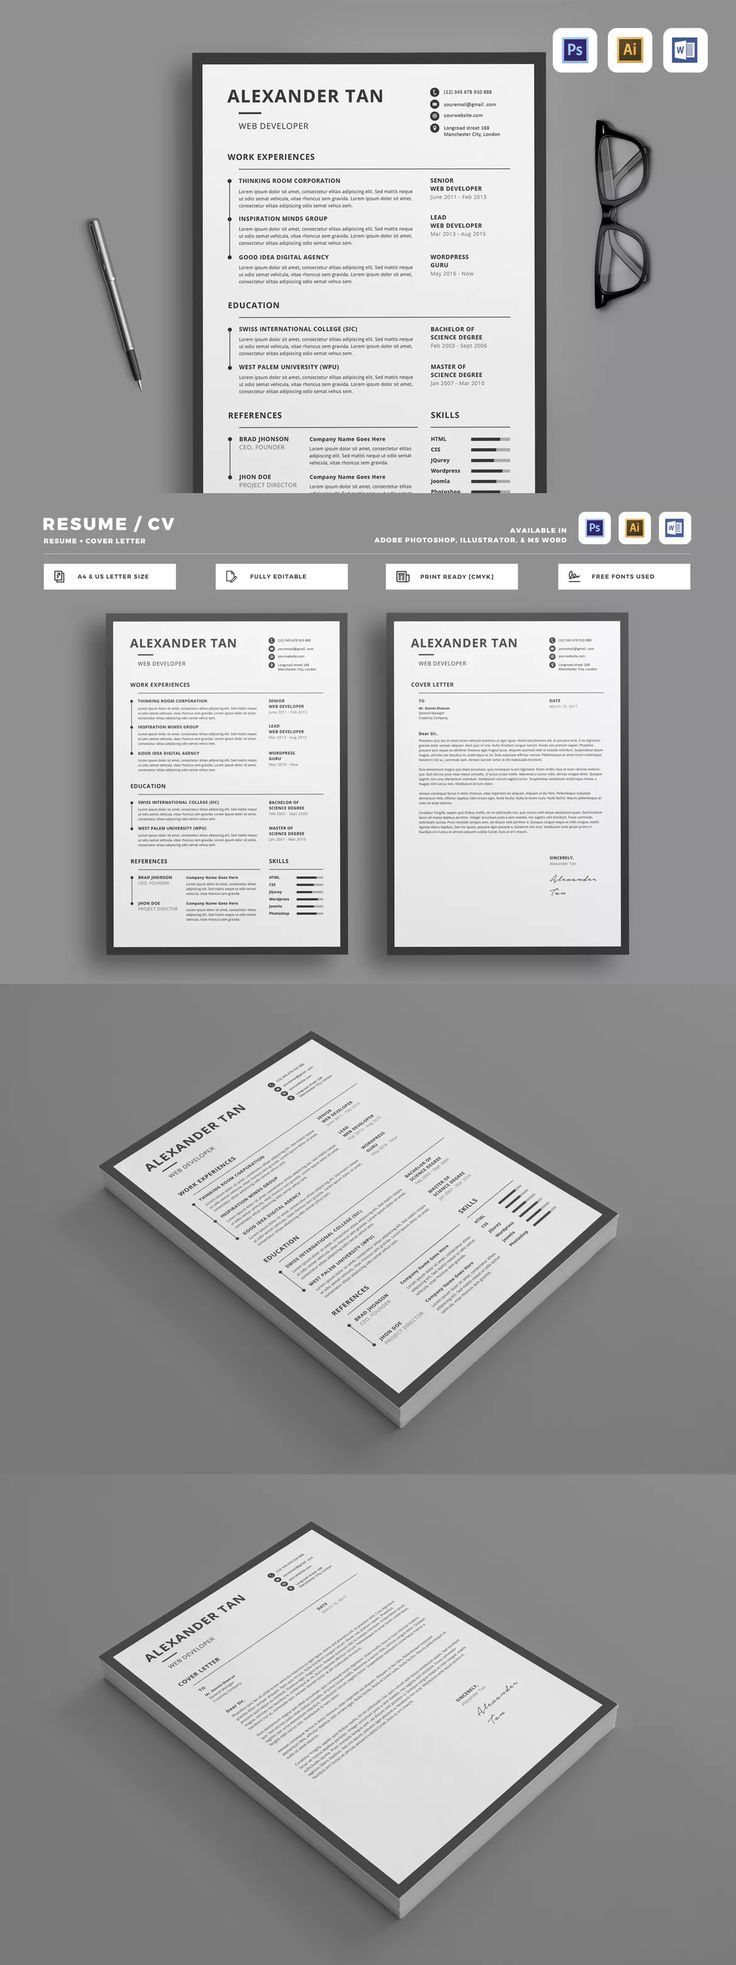 85 best Resume / CV Design Templates images on Pinterest ...